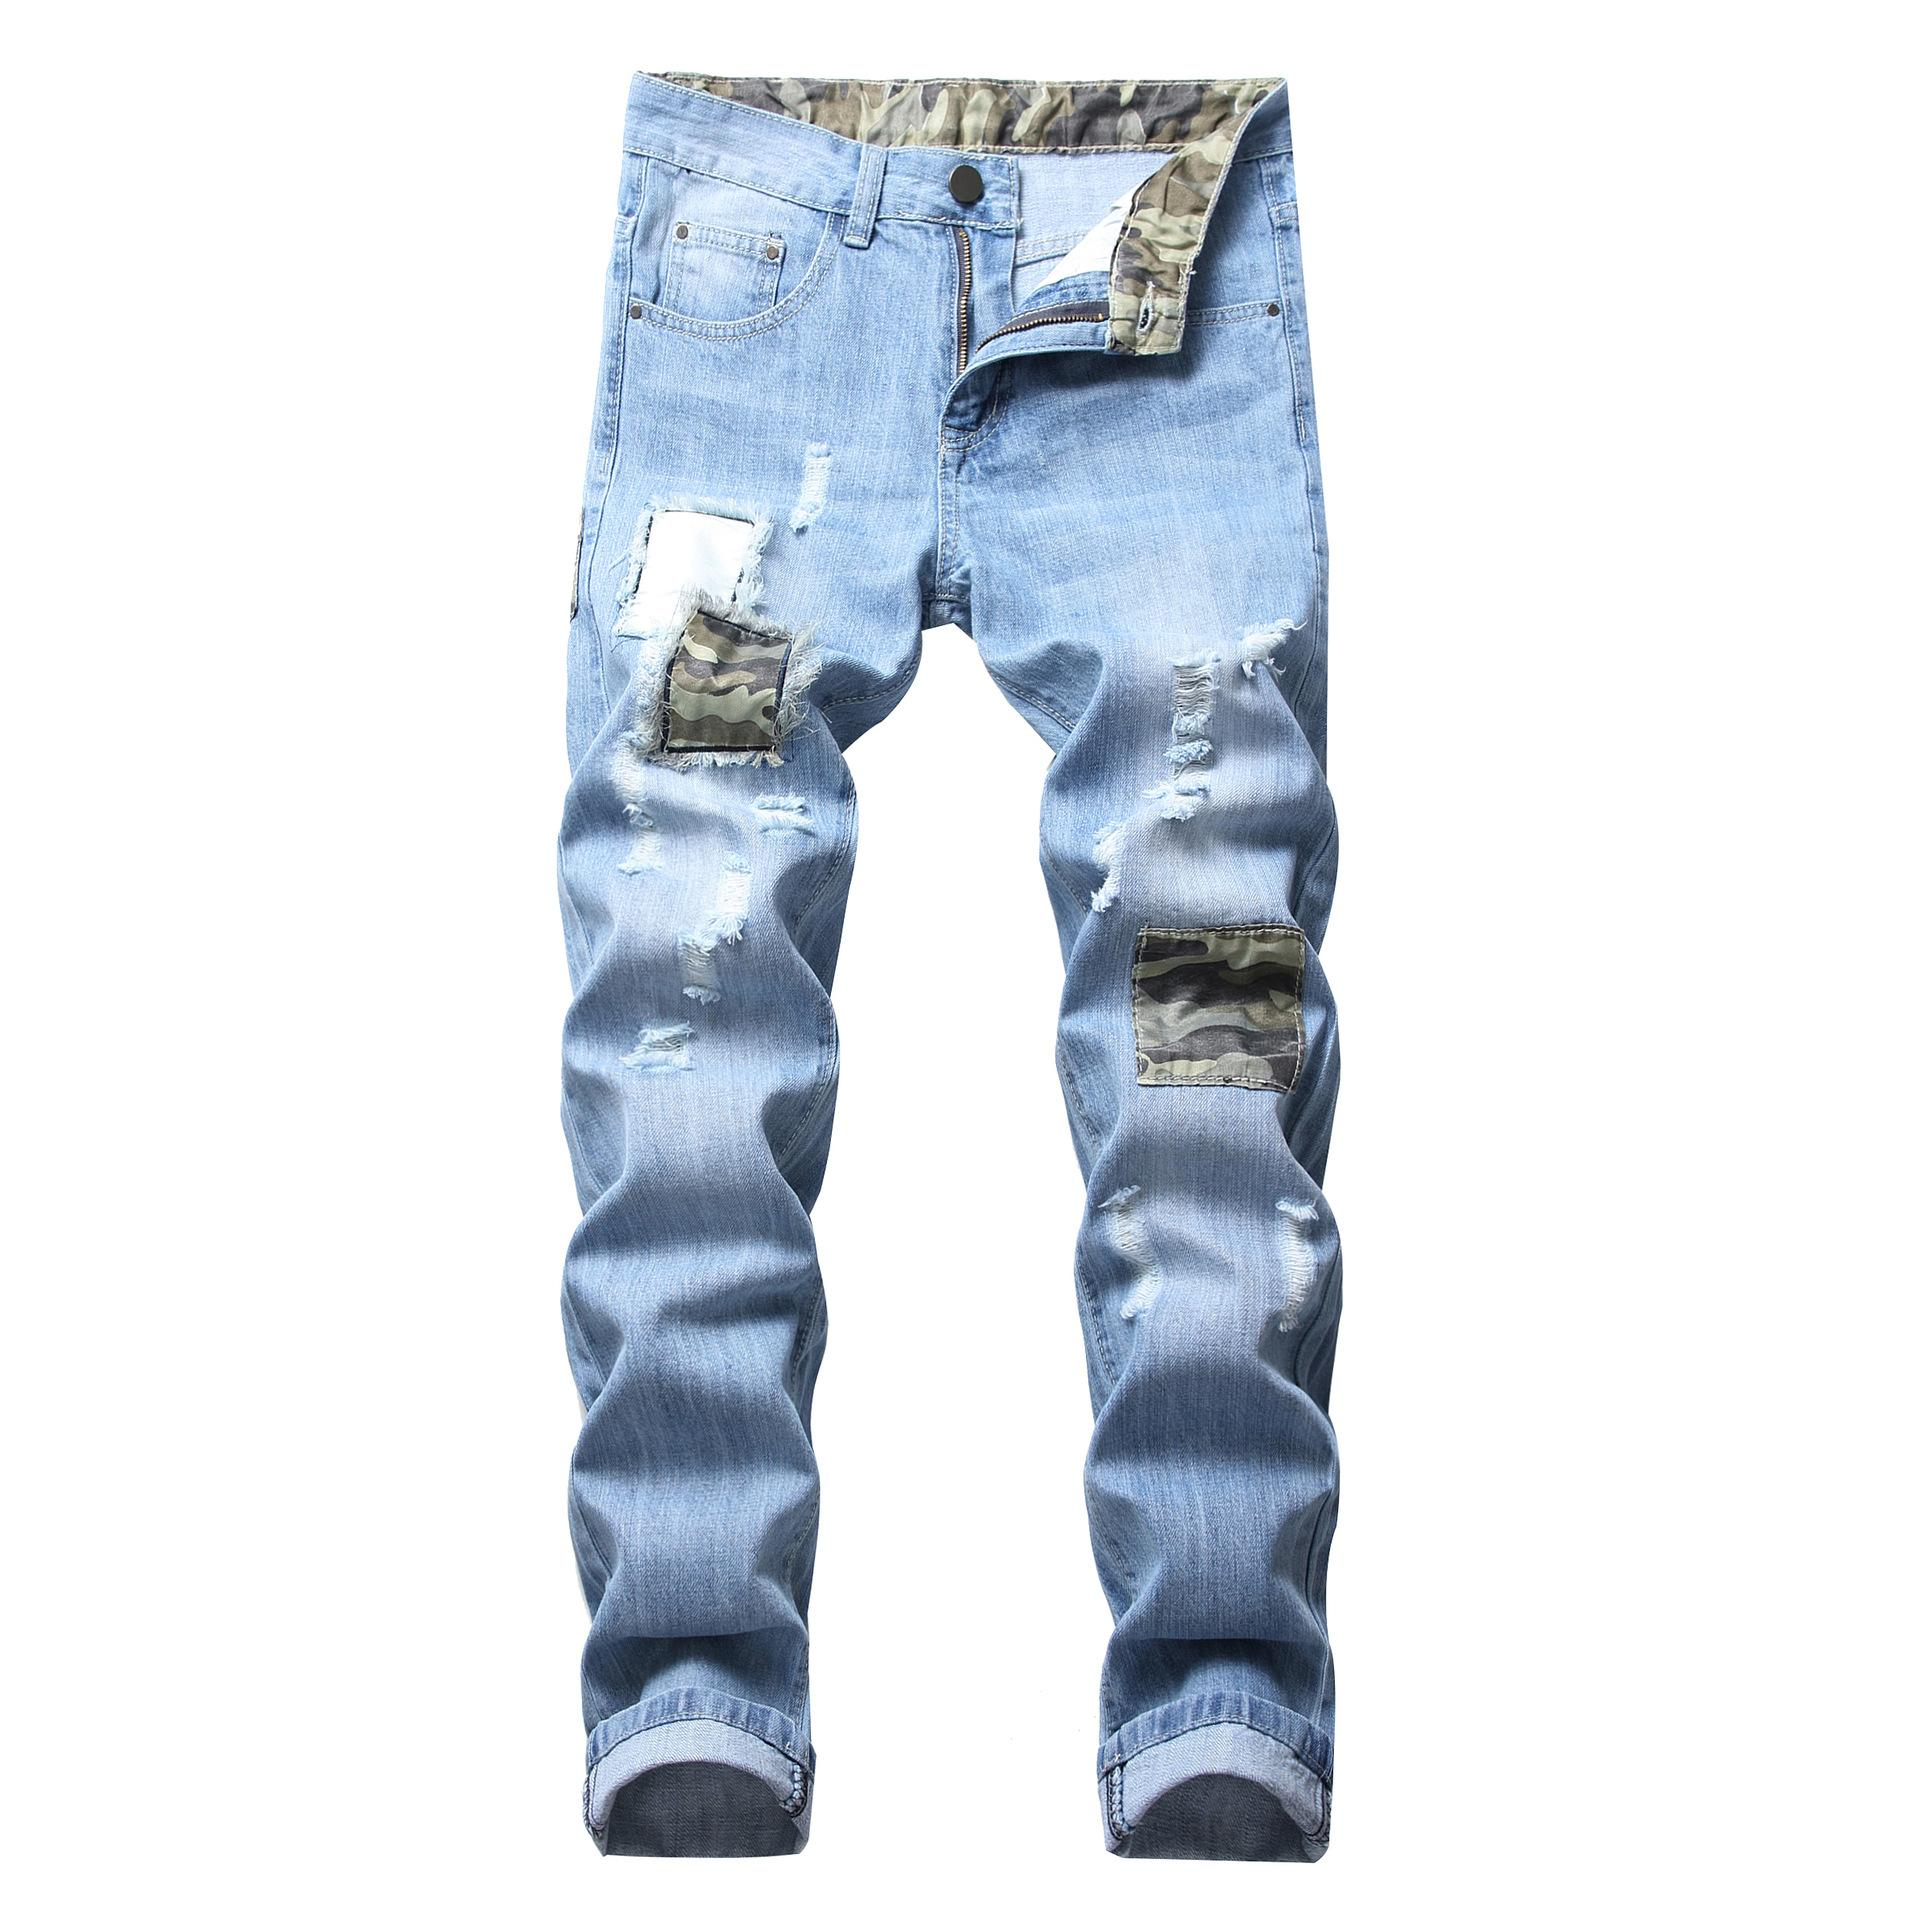 2019 Men Jeans Stretch Destroyed Ripped Design Fashion Patchwork Skinny Jeans for Male Slim Fit Biker Holes Cotton Denim Pants